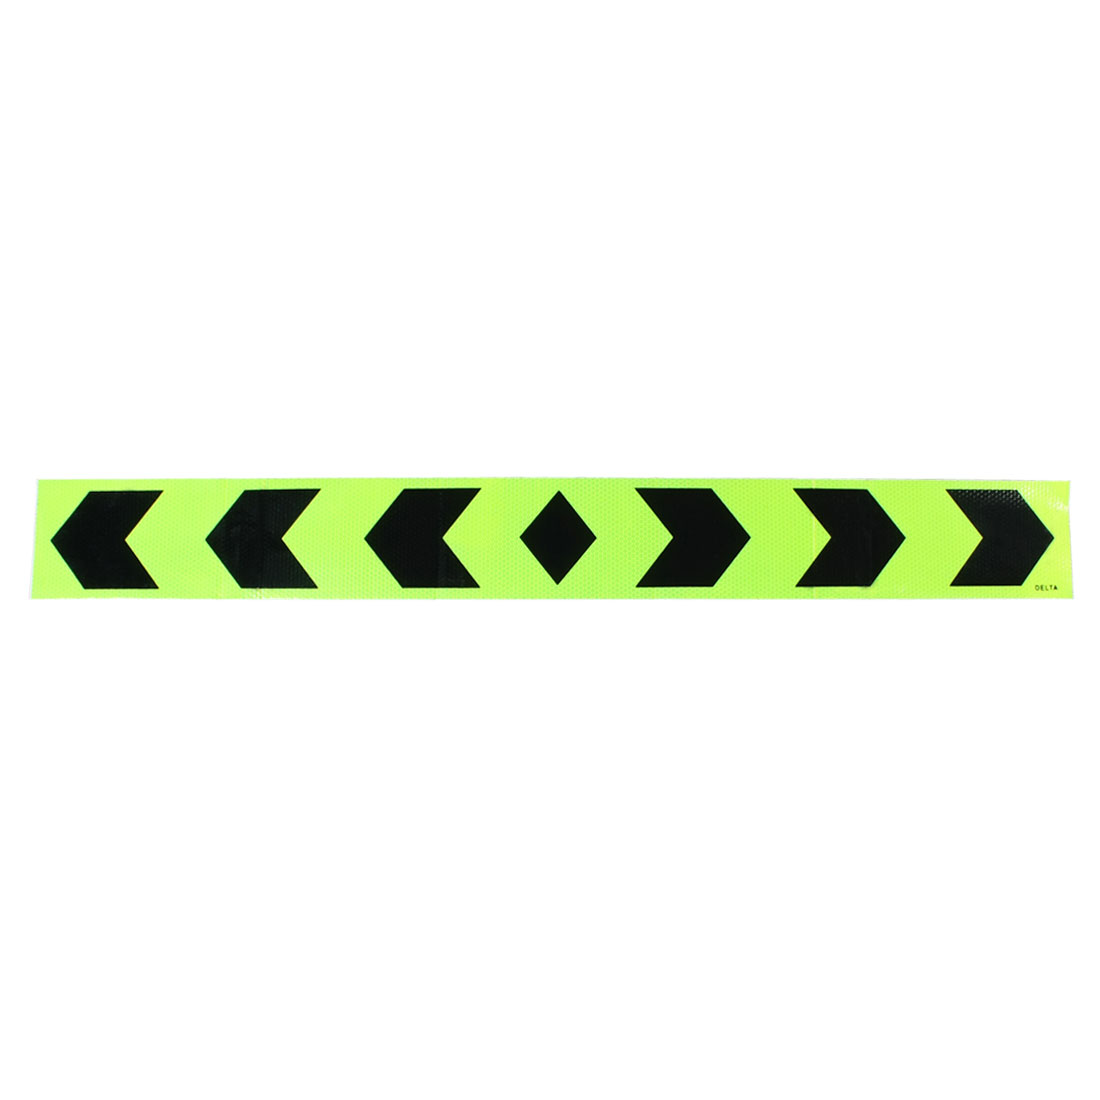 90x10cm Adhesive Car Reflective Warning Sign Decal Sticker Yellow-green Black